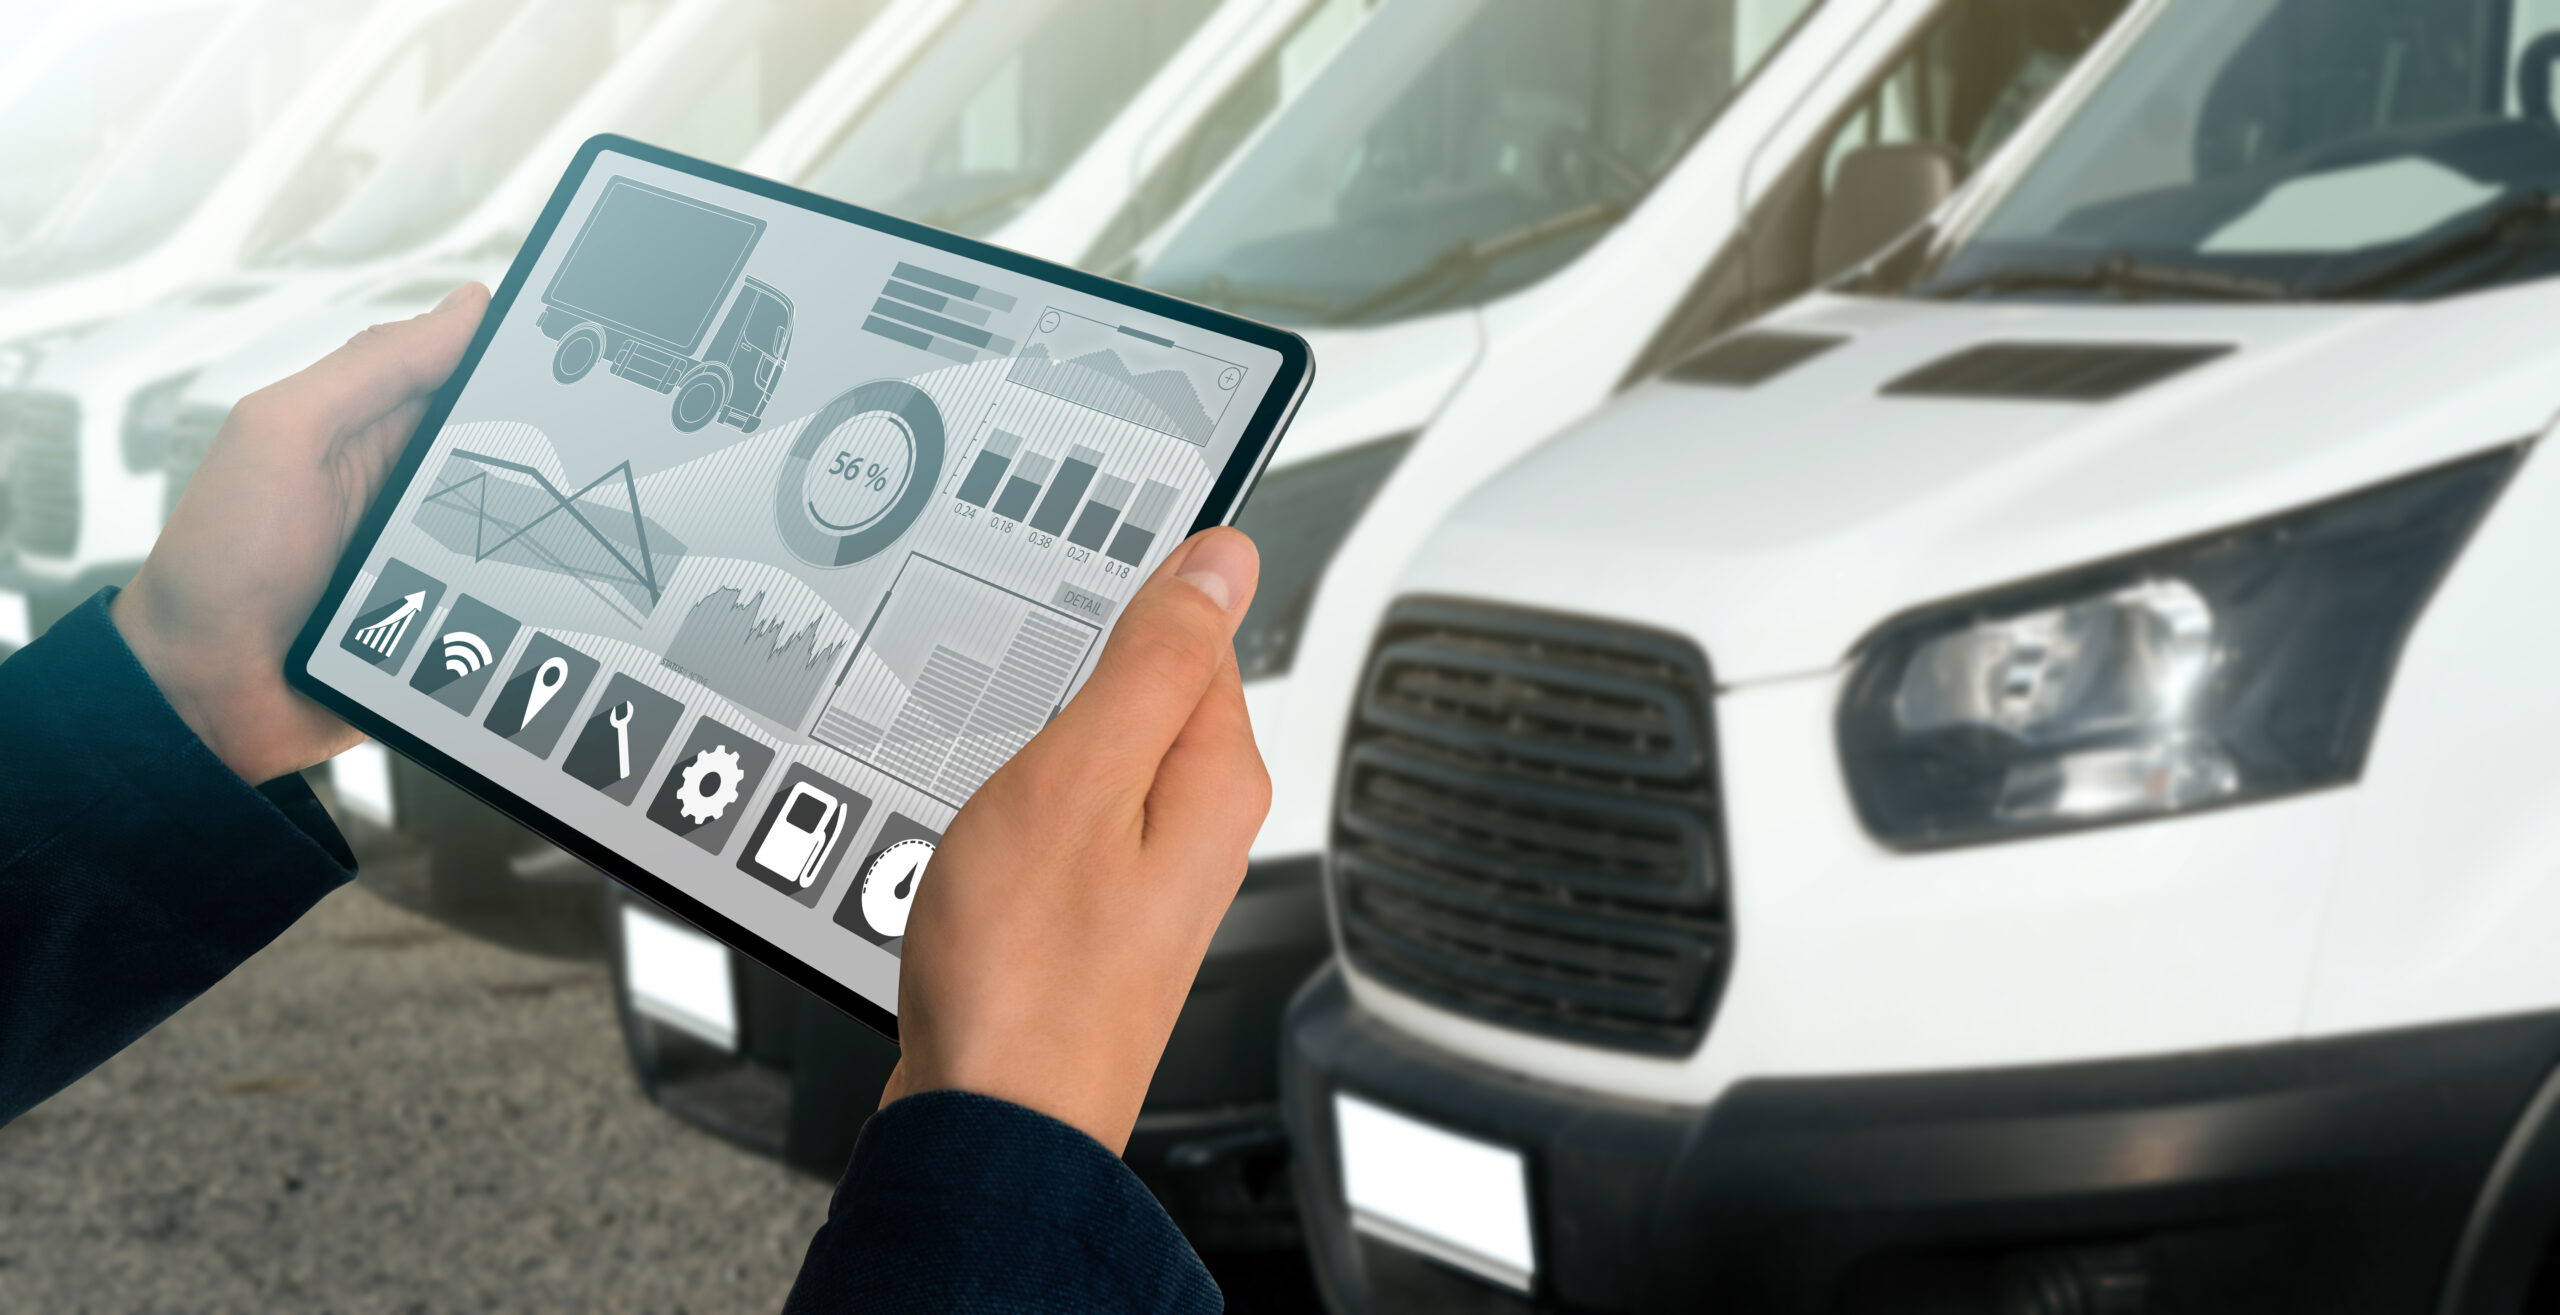 Do you know the business benefits of using Telematics